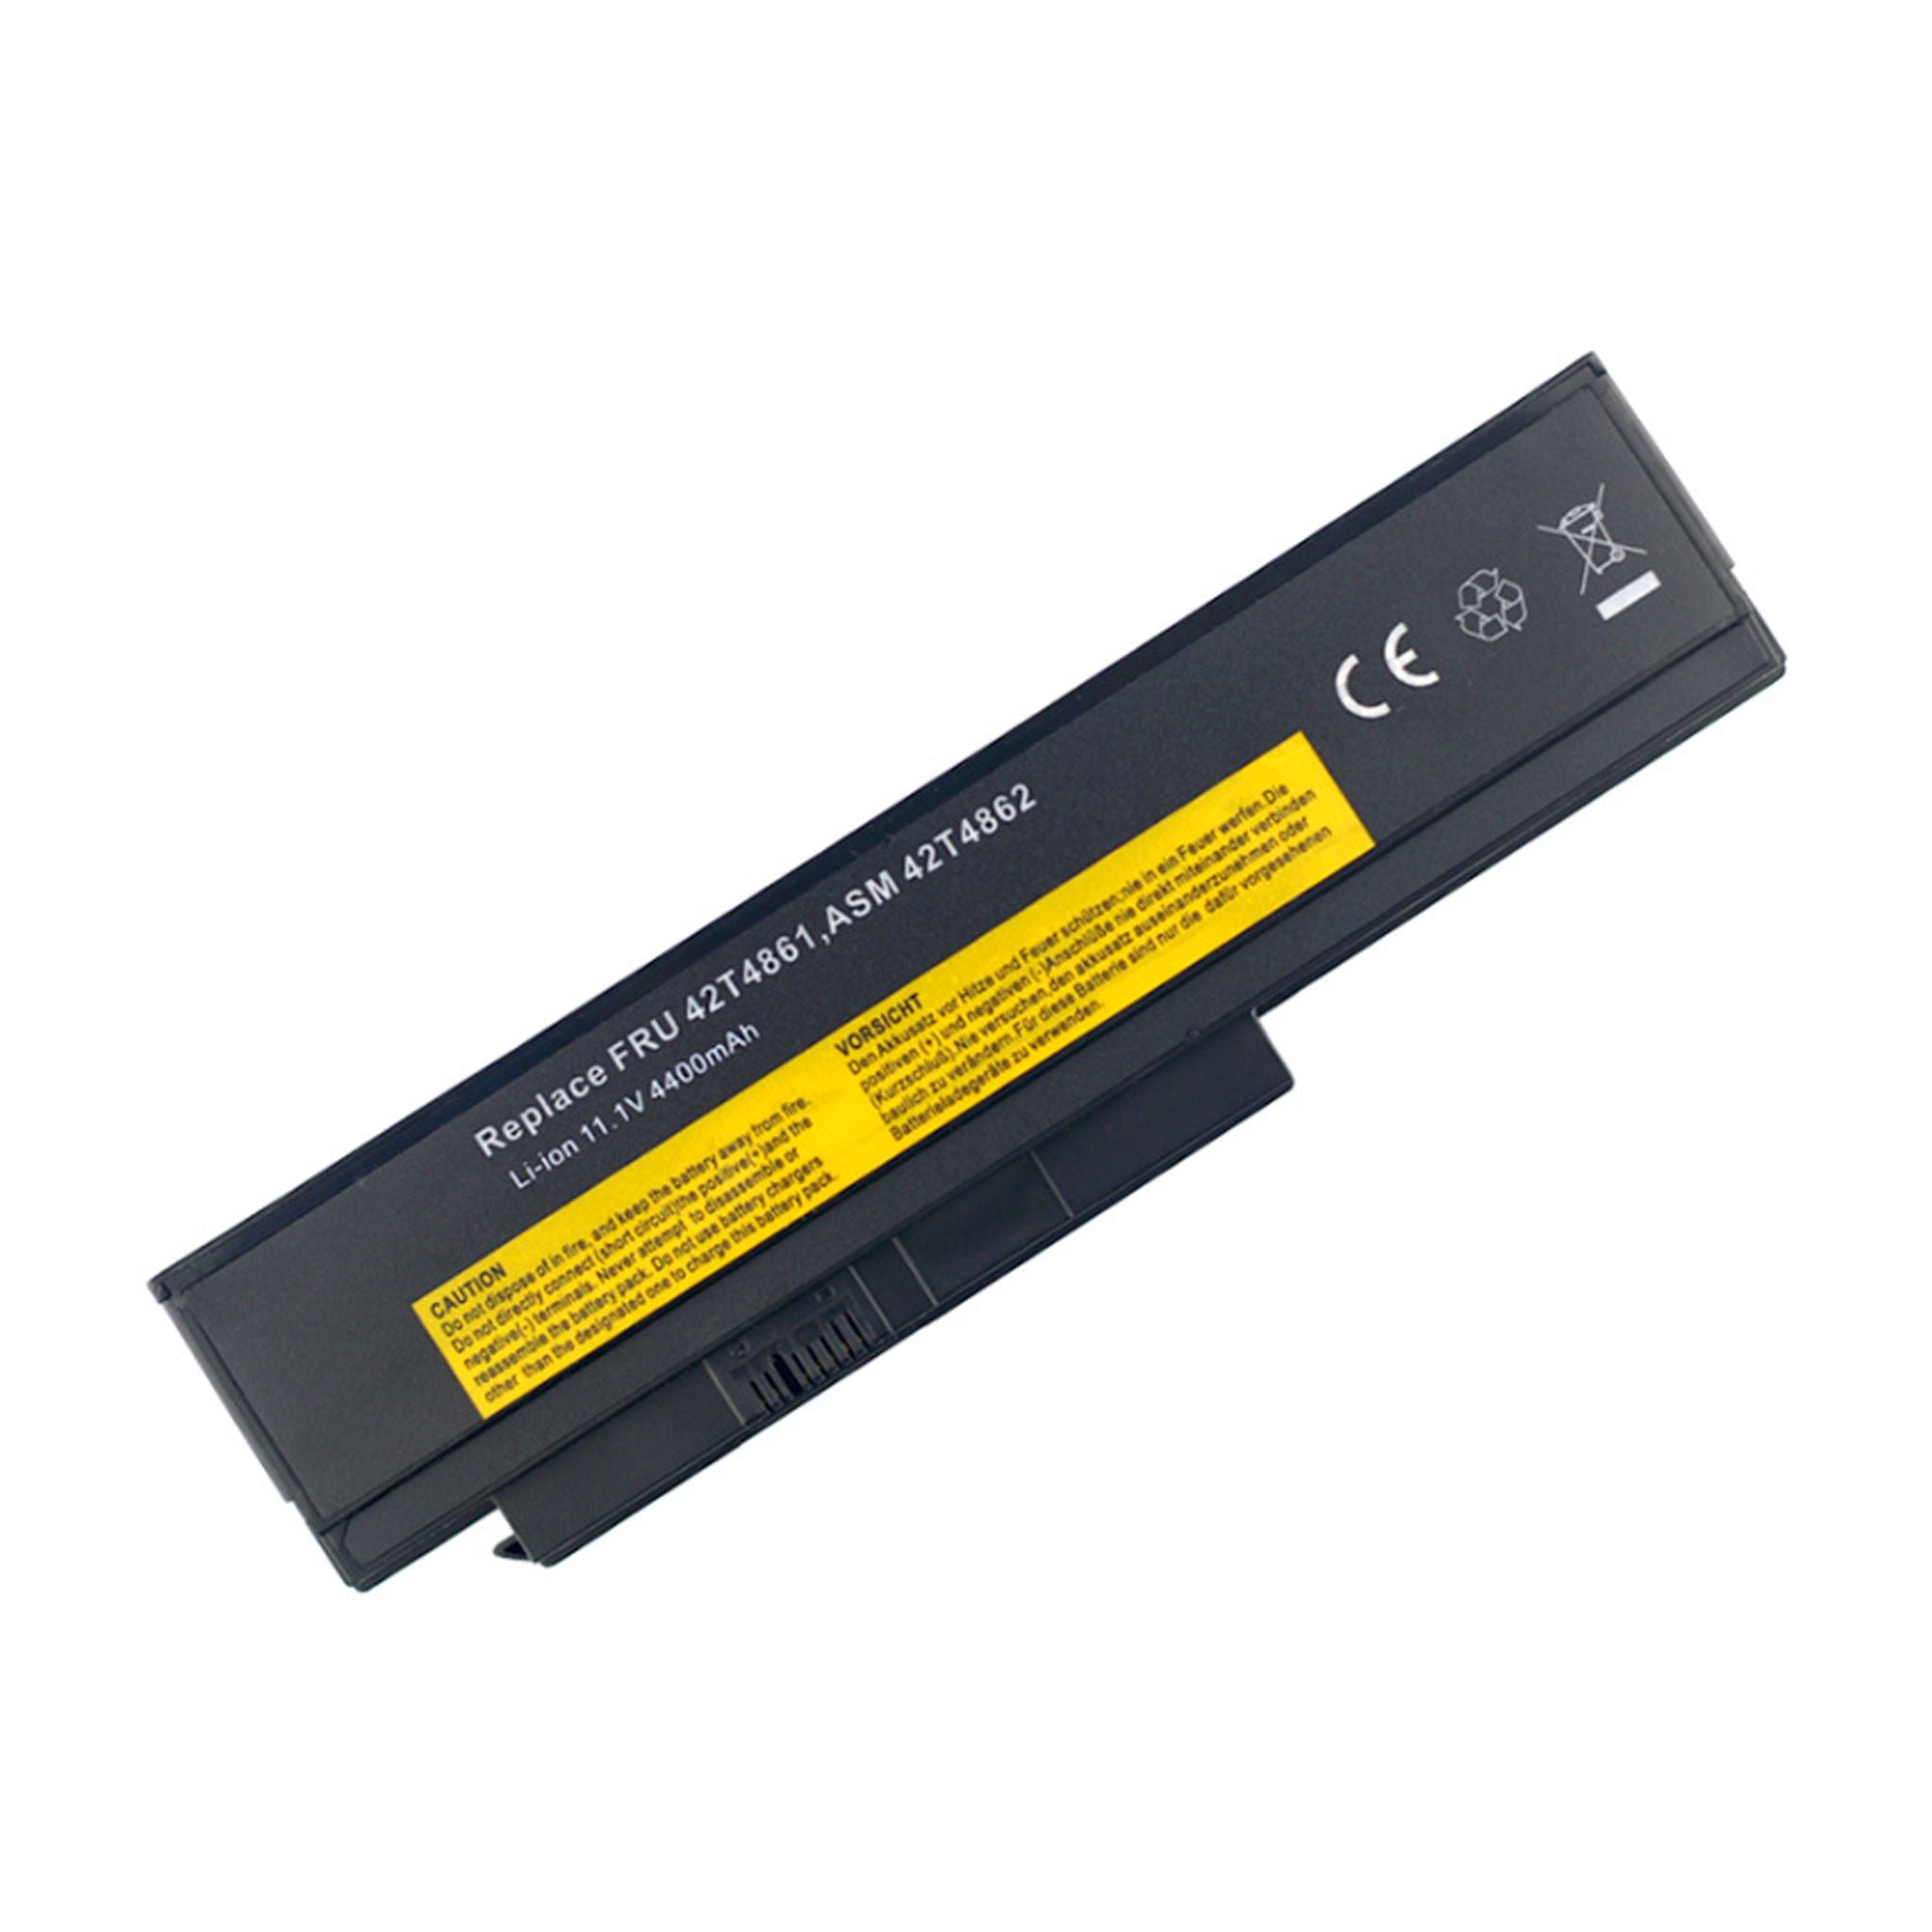 Lenovo ThinkPad X230 44+ Battery